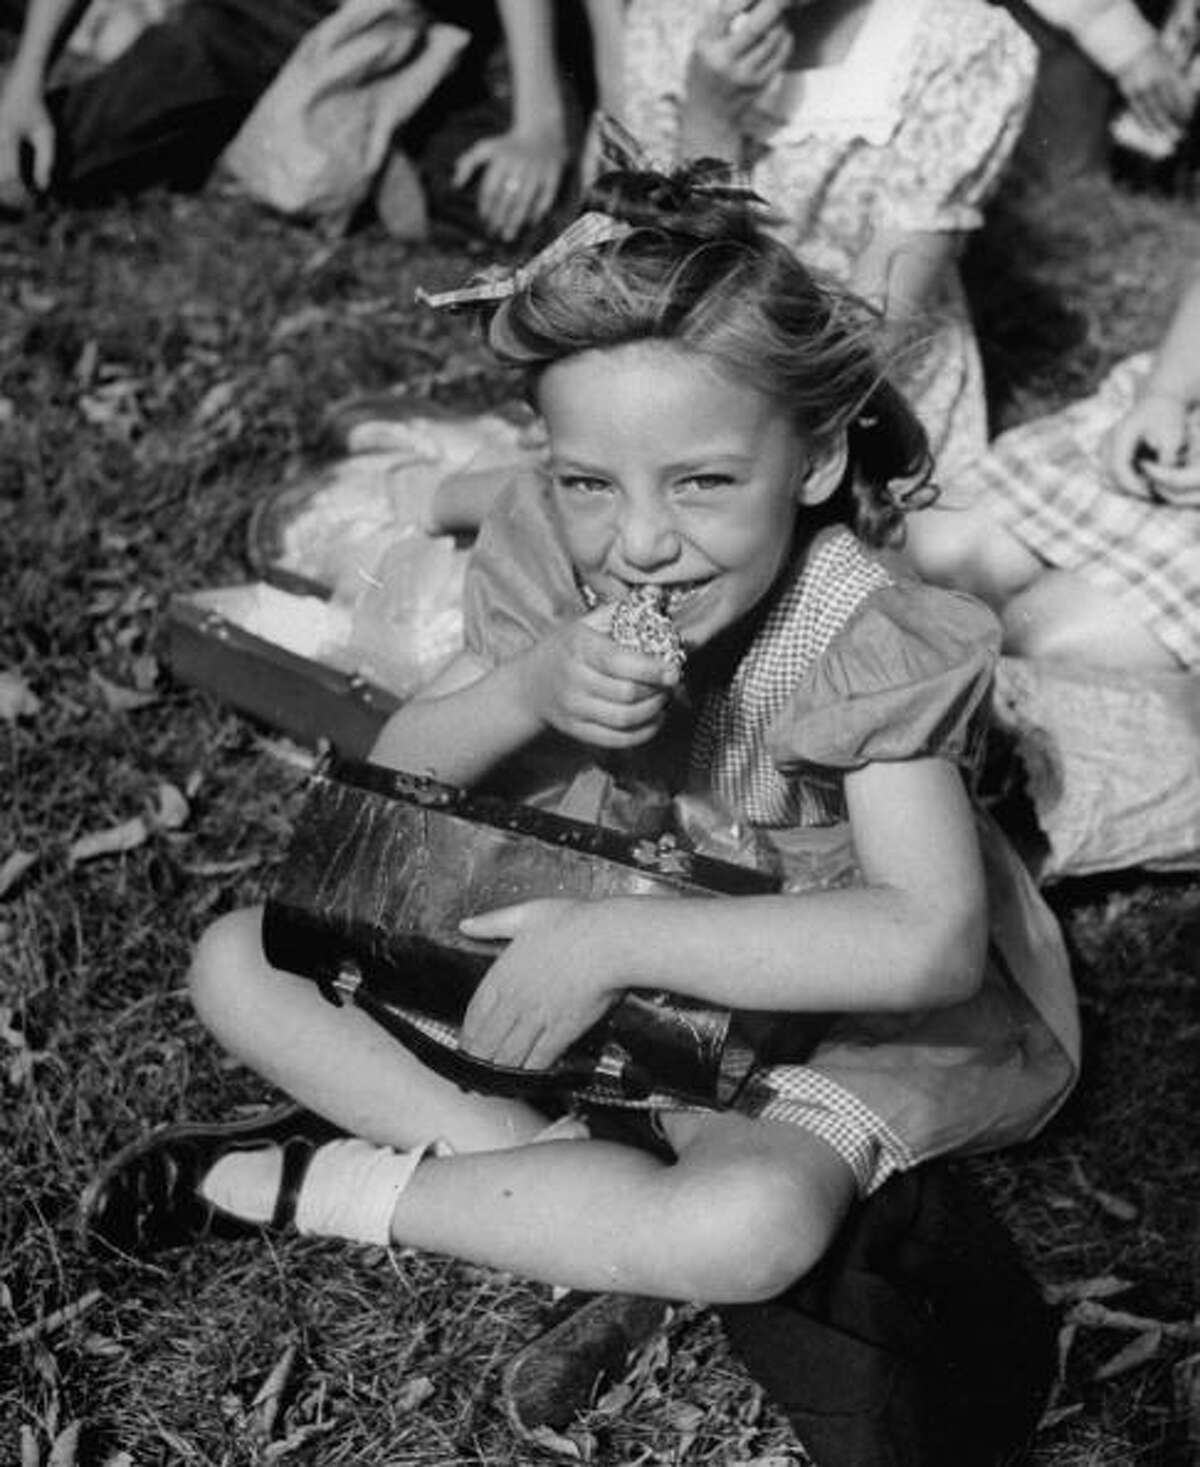 A little girl eating lunch outside at school in 1946. (Photo by Bernard Hoffman/Time Life Pictures/Getty Images)